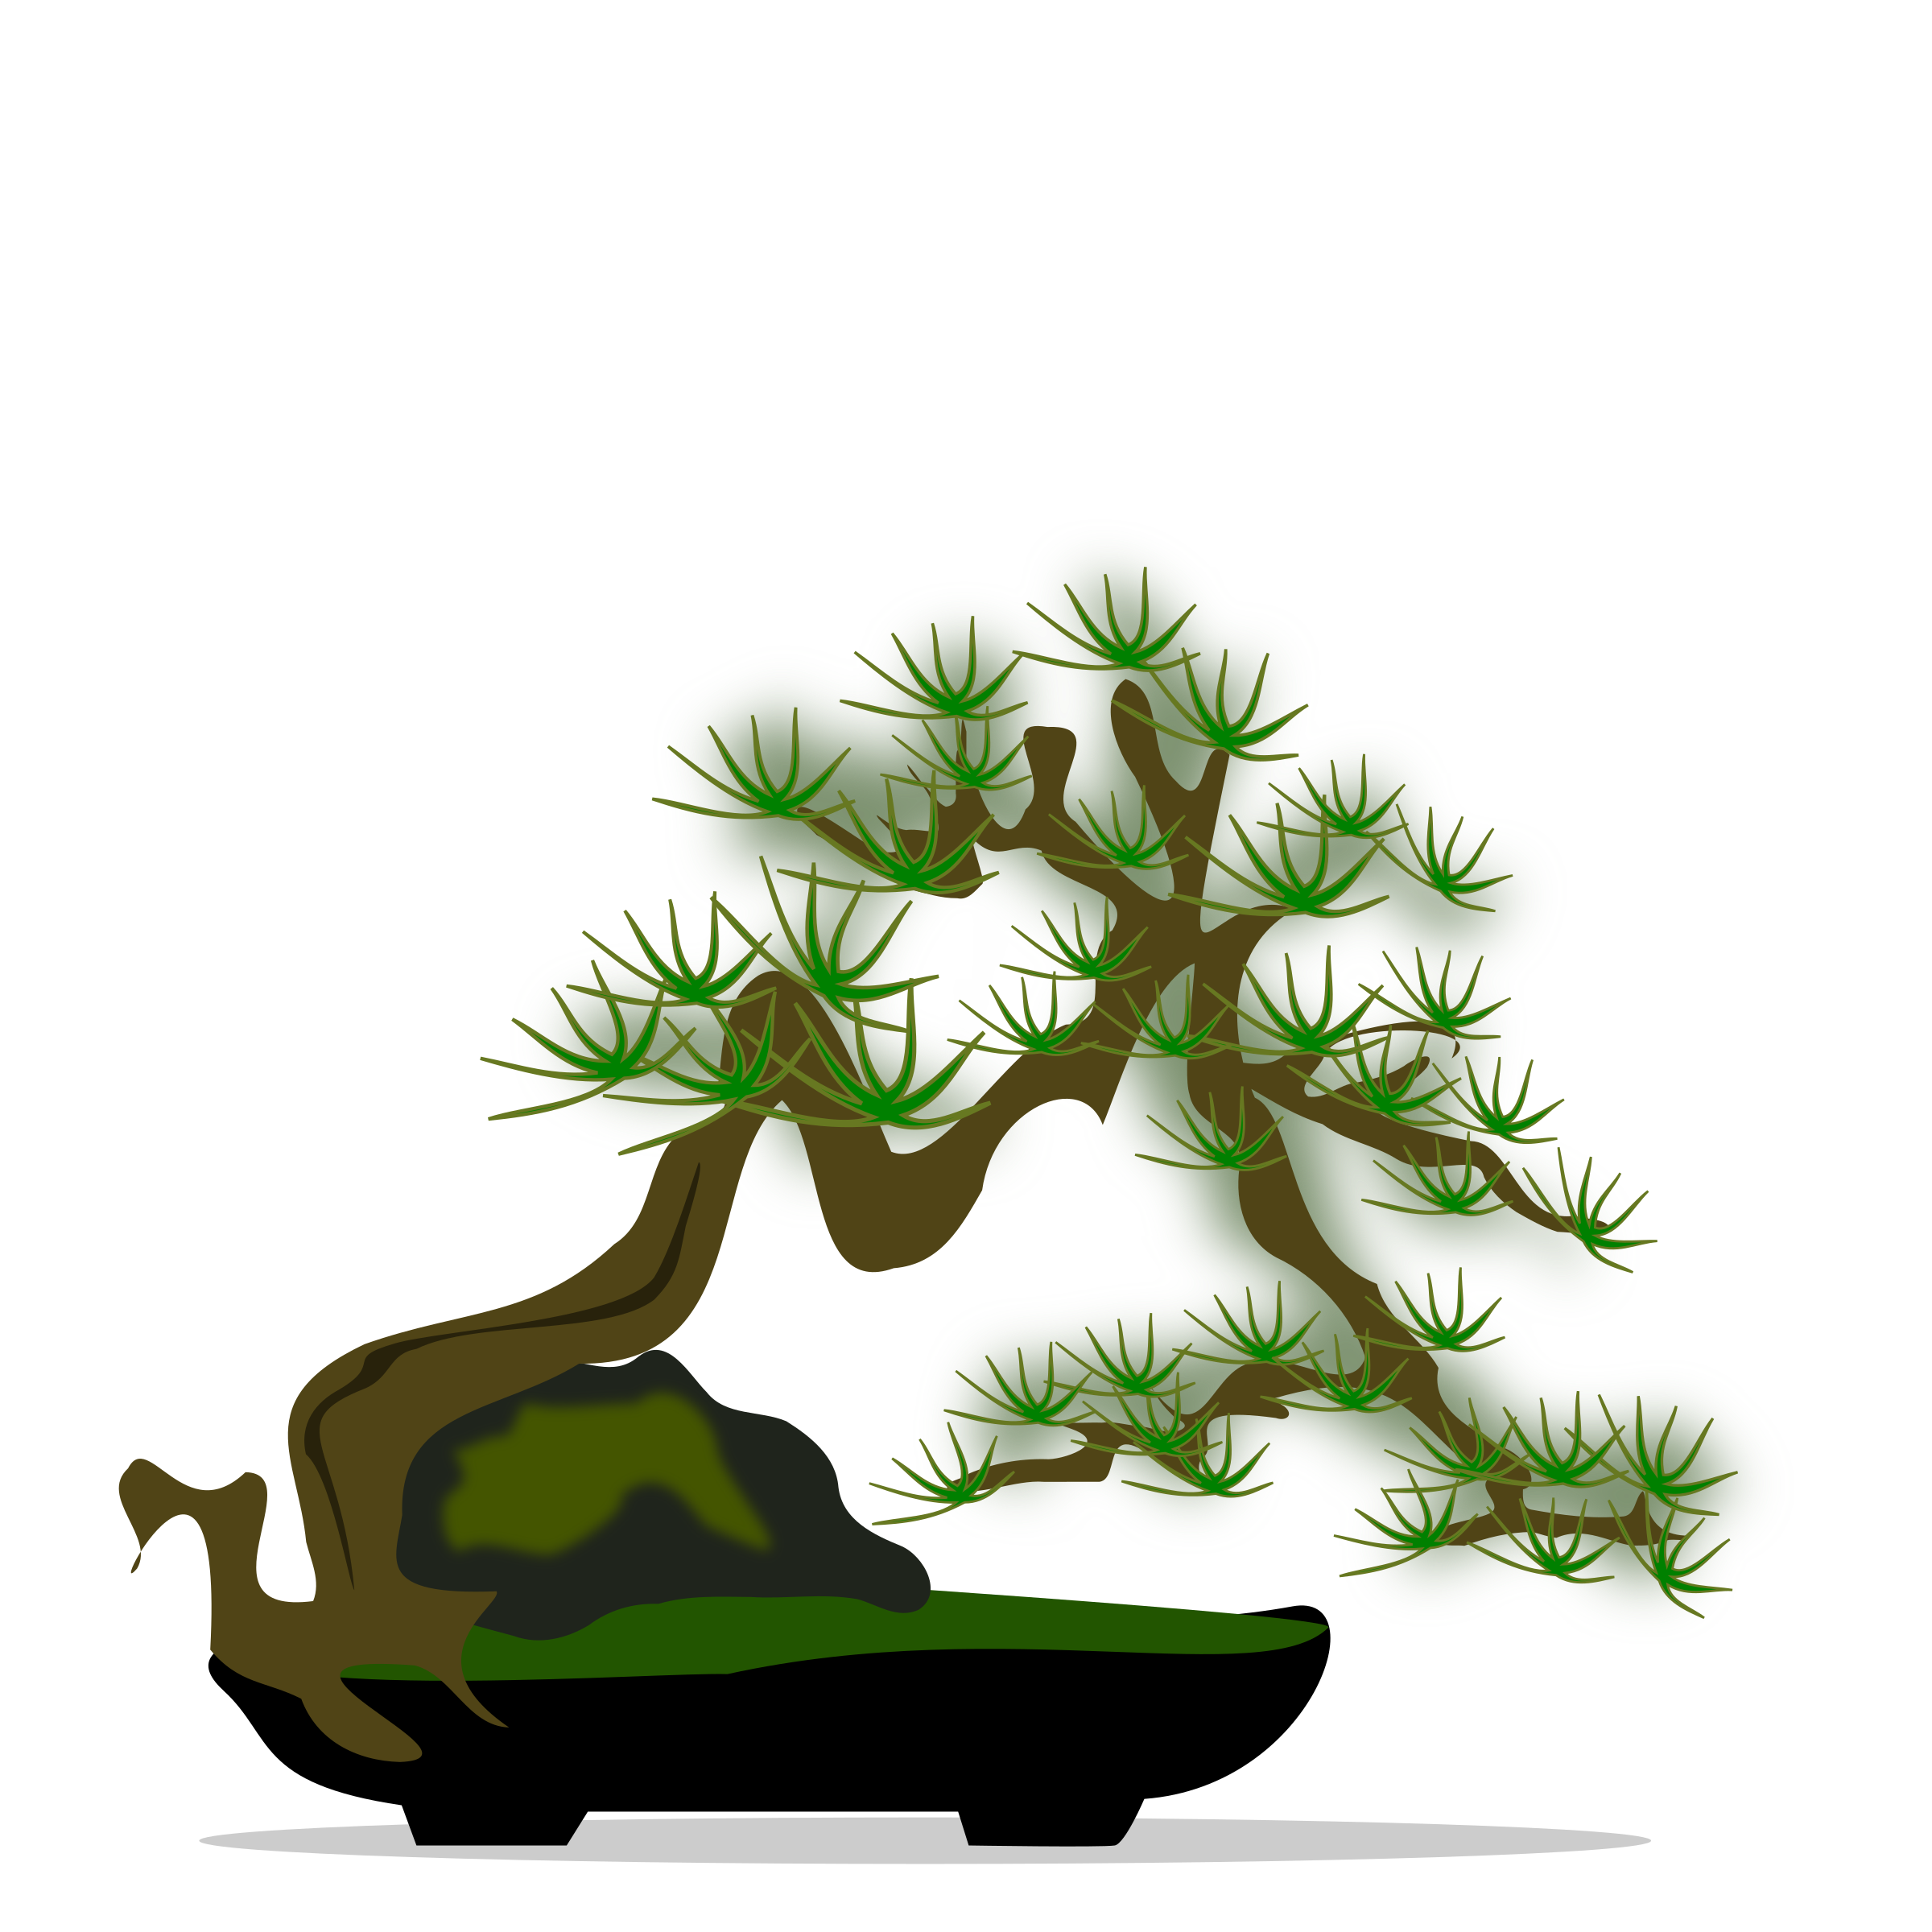 Bonsai clipart #2, Download drawings